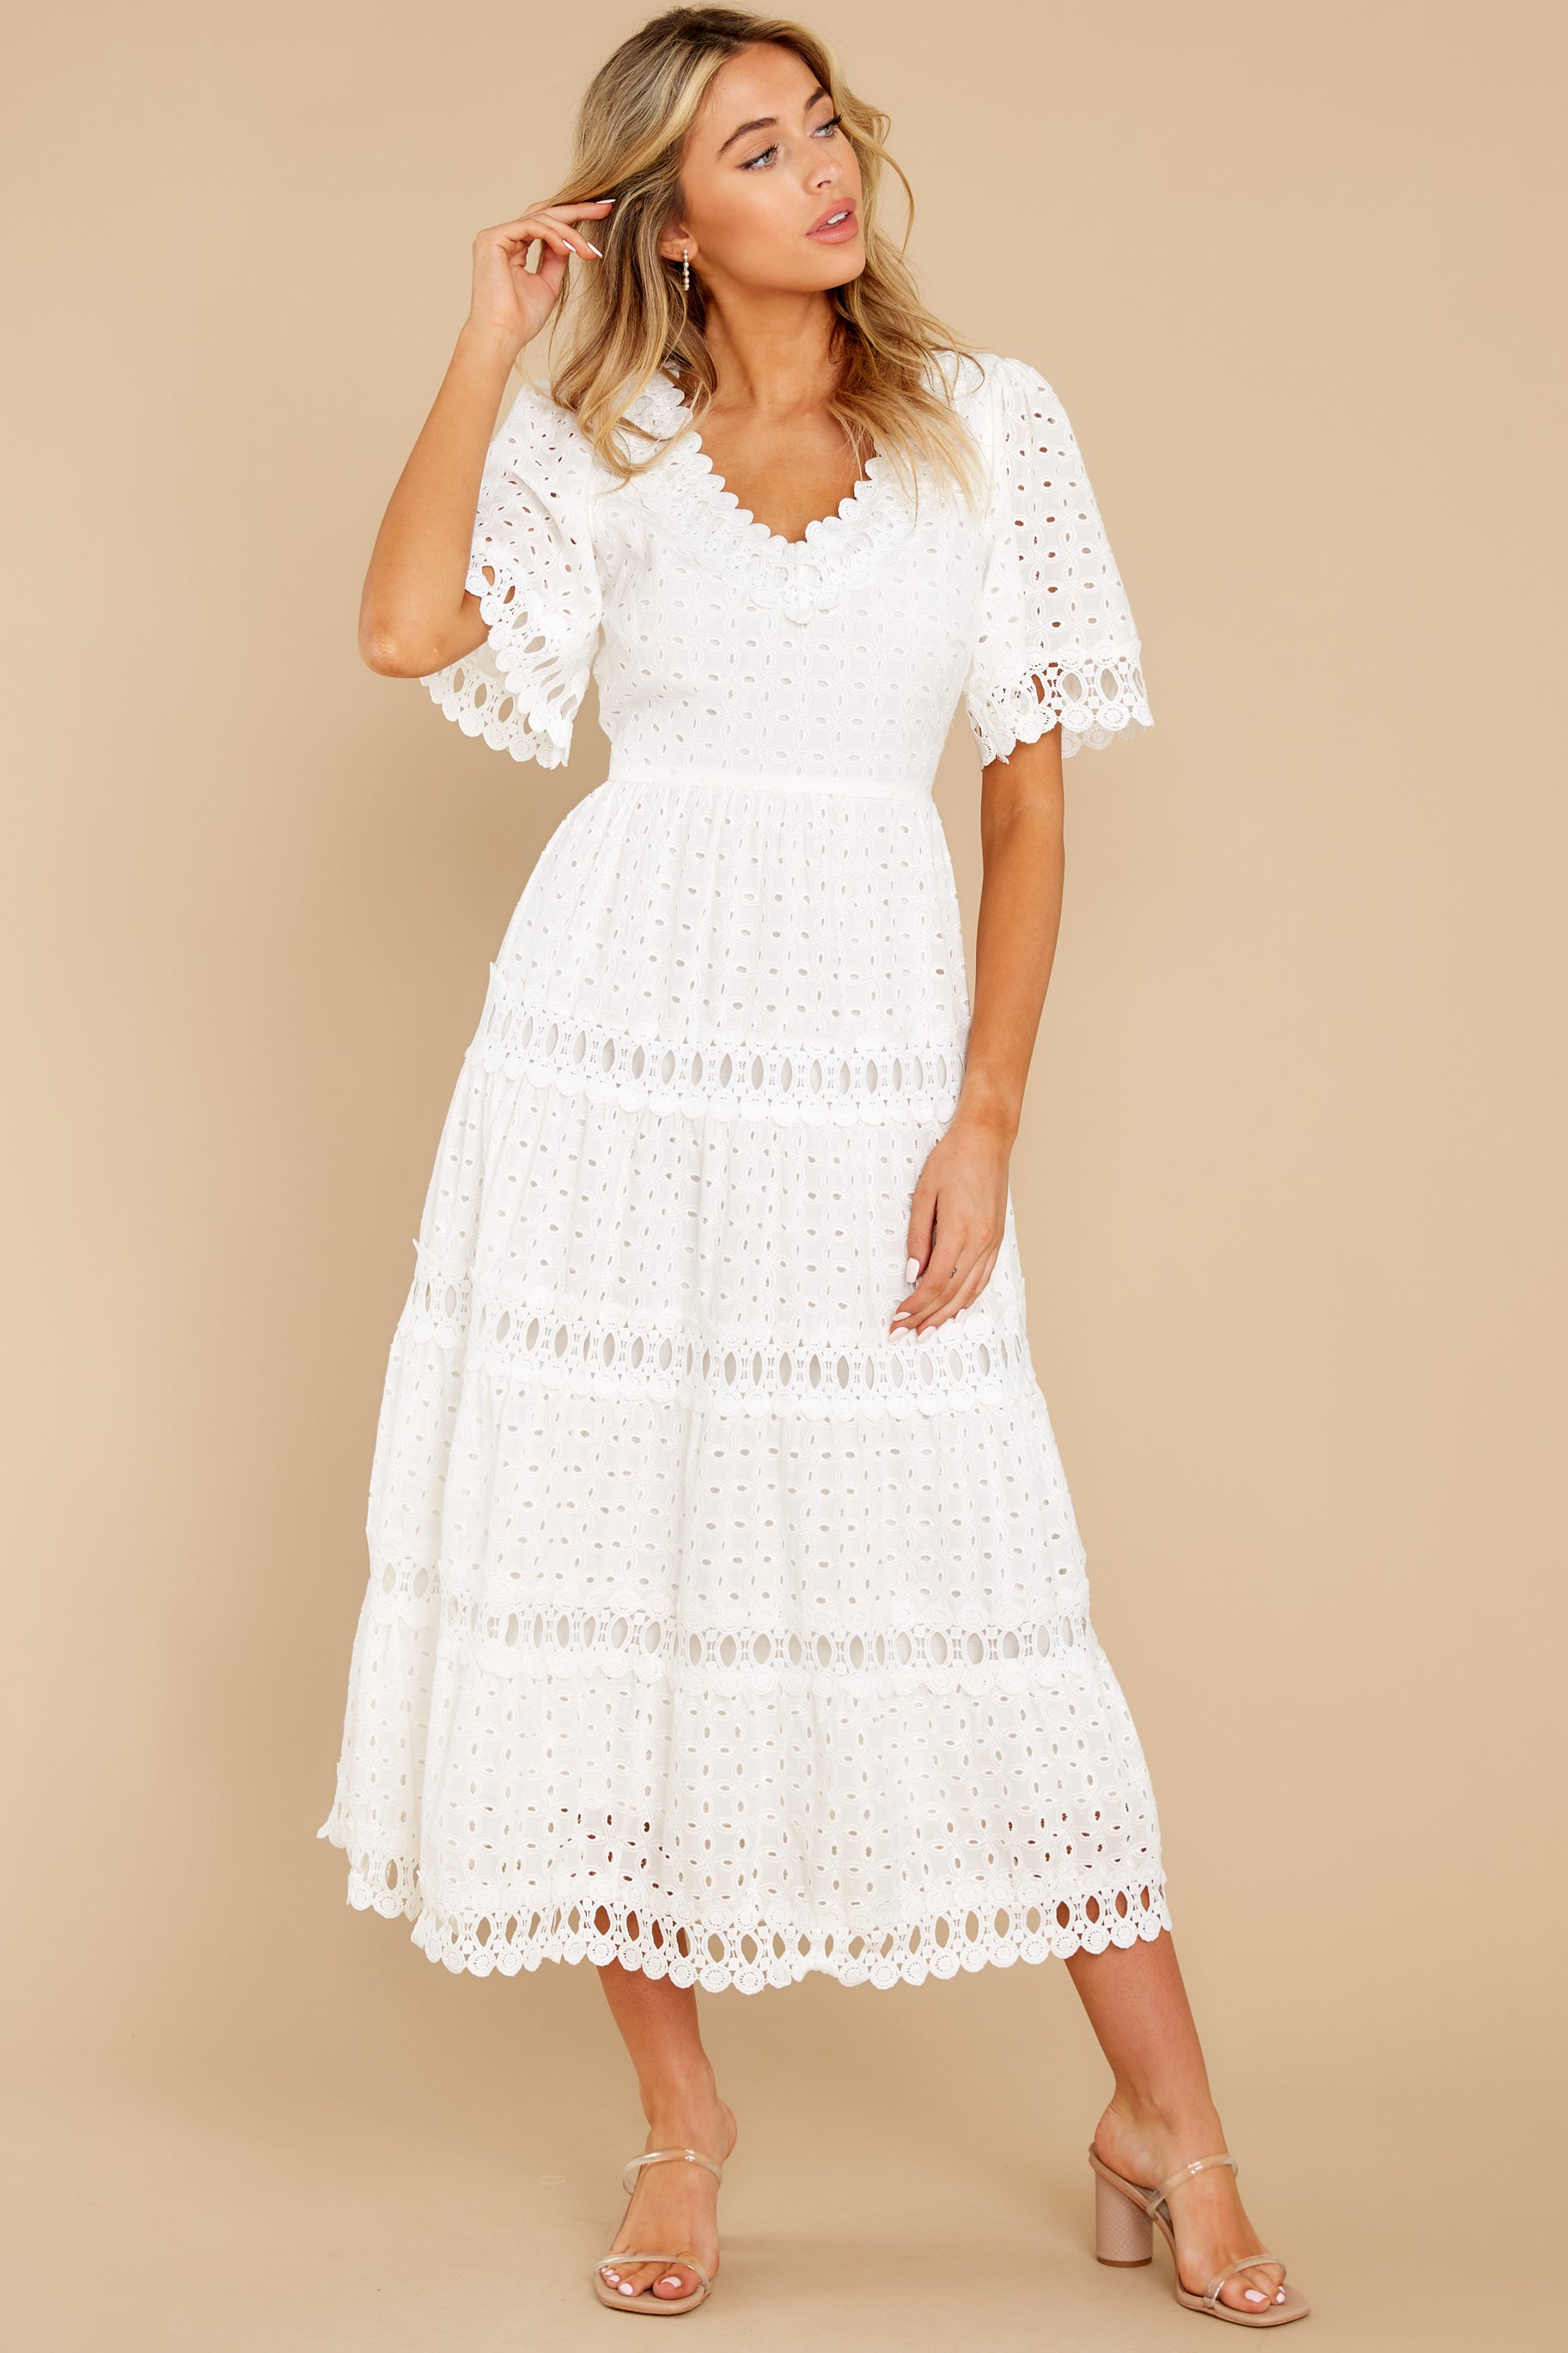 6 Couldn't Help It Off White Eyelet Maxi Dress at reddress.com